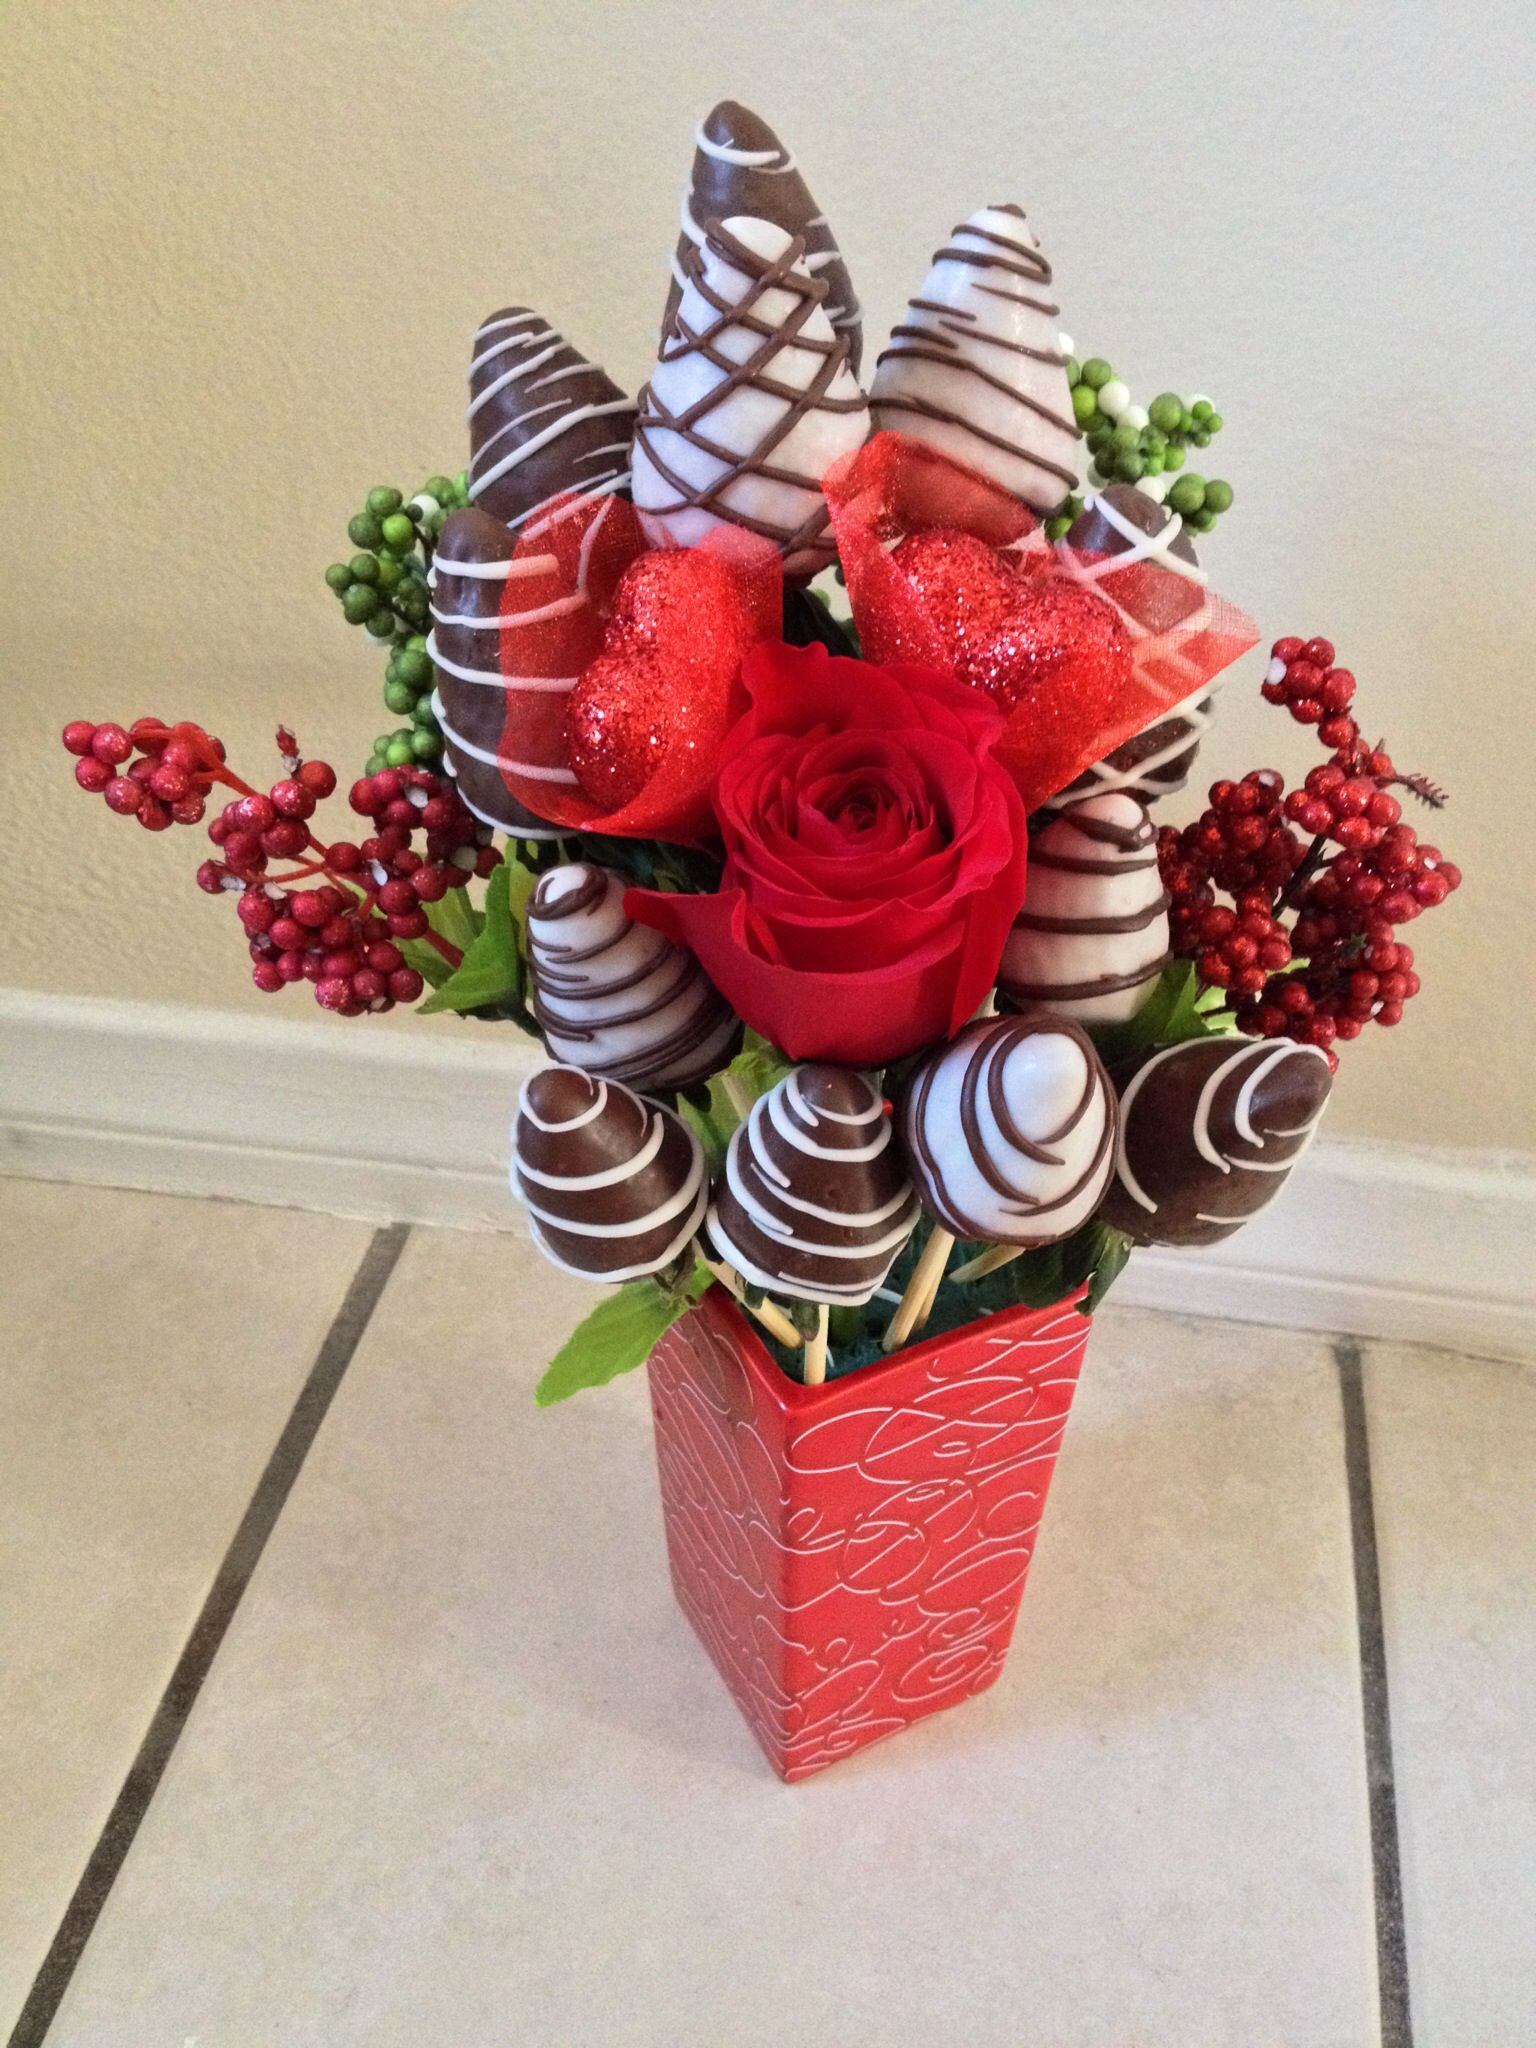 Chocolate Covered Strawberry Roses | Strawberry roses, Chocolate ...